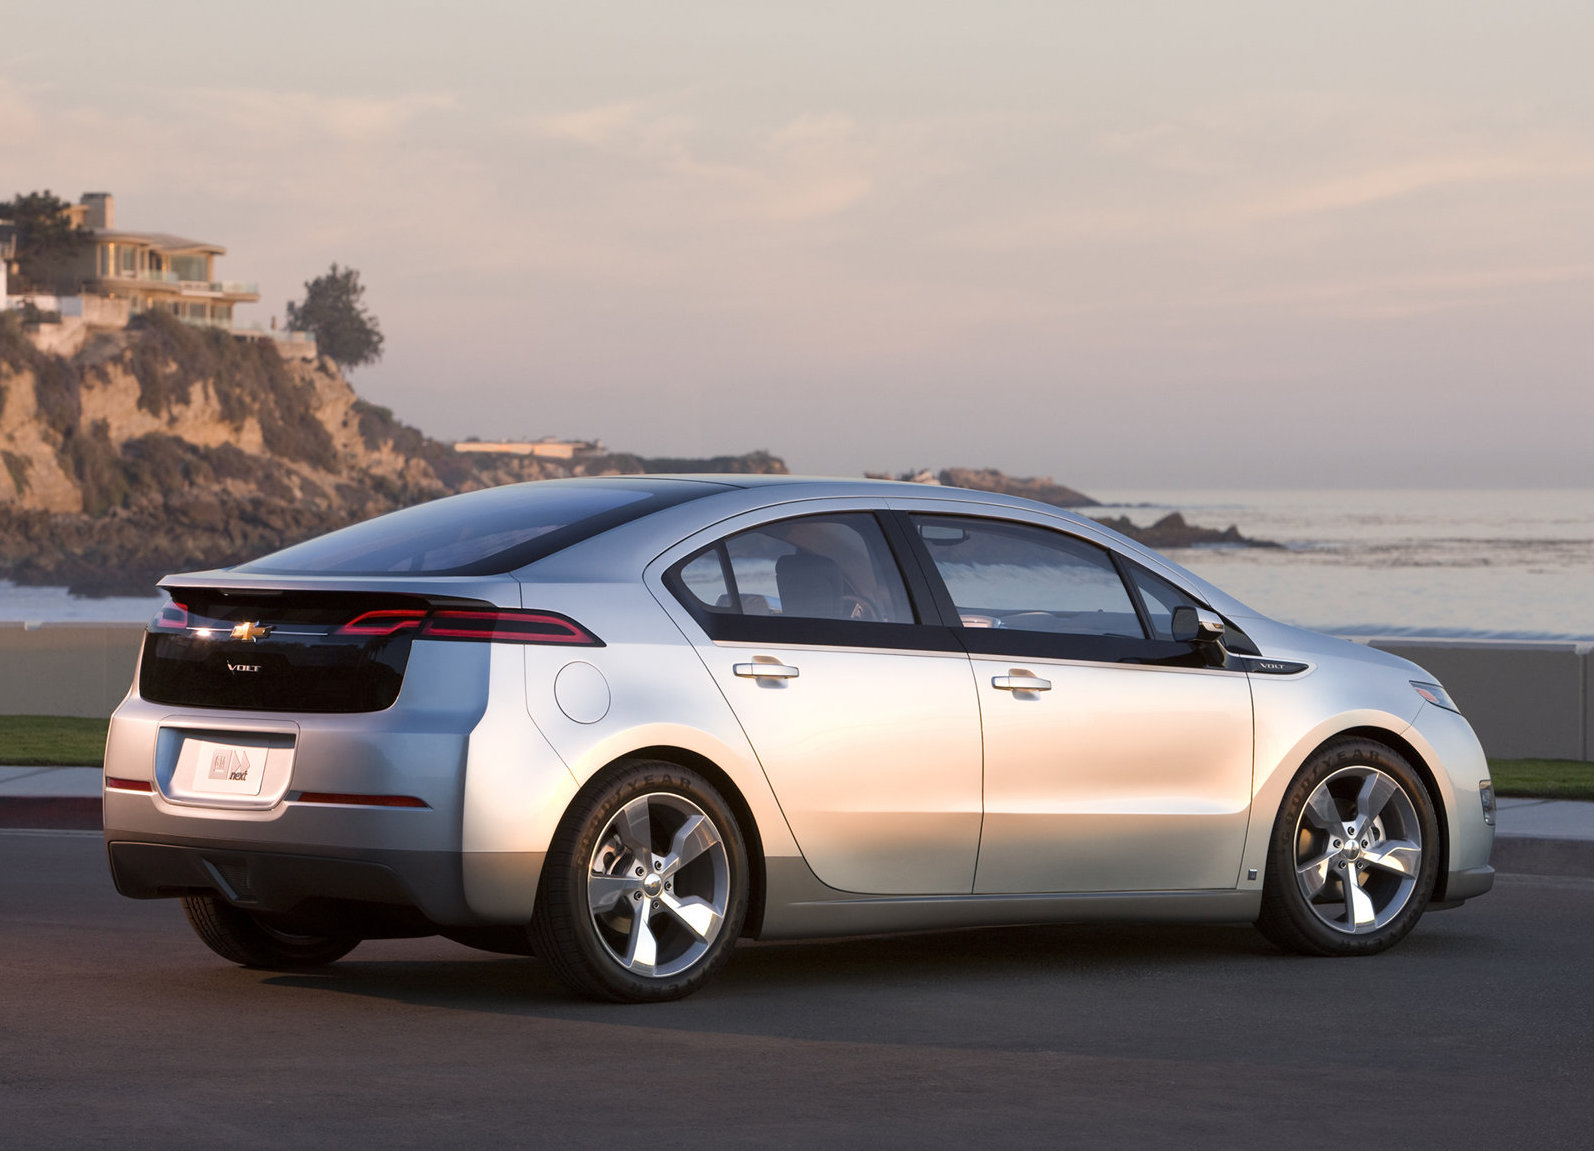 2011 Chevrolet Volt Rear 3/4